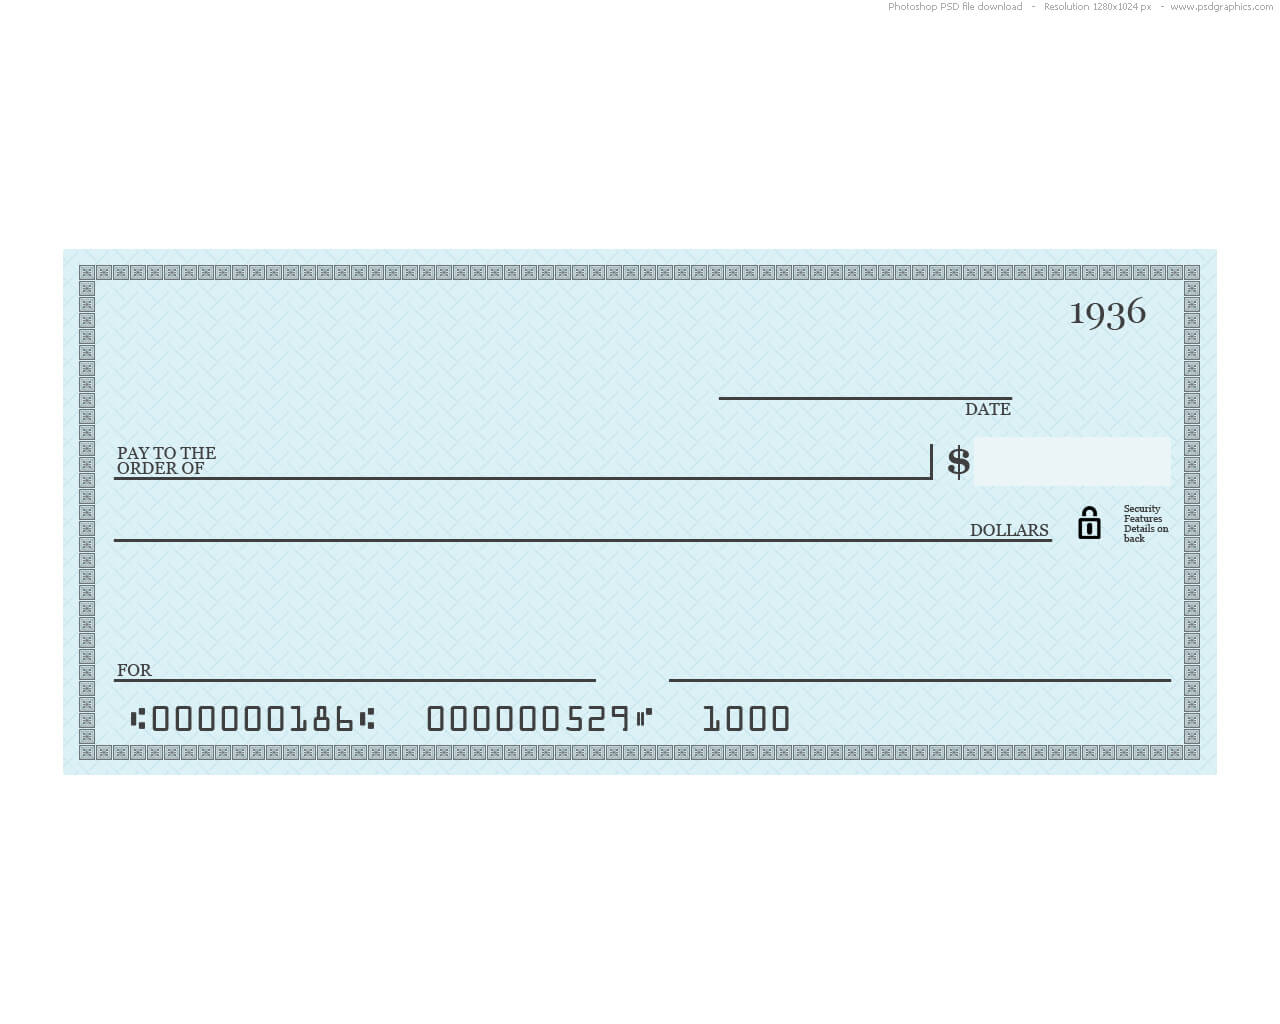 037 Template Ideas Blank Business Check Depositphotos With Regard To Customizable Blank Check Template